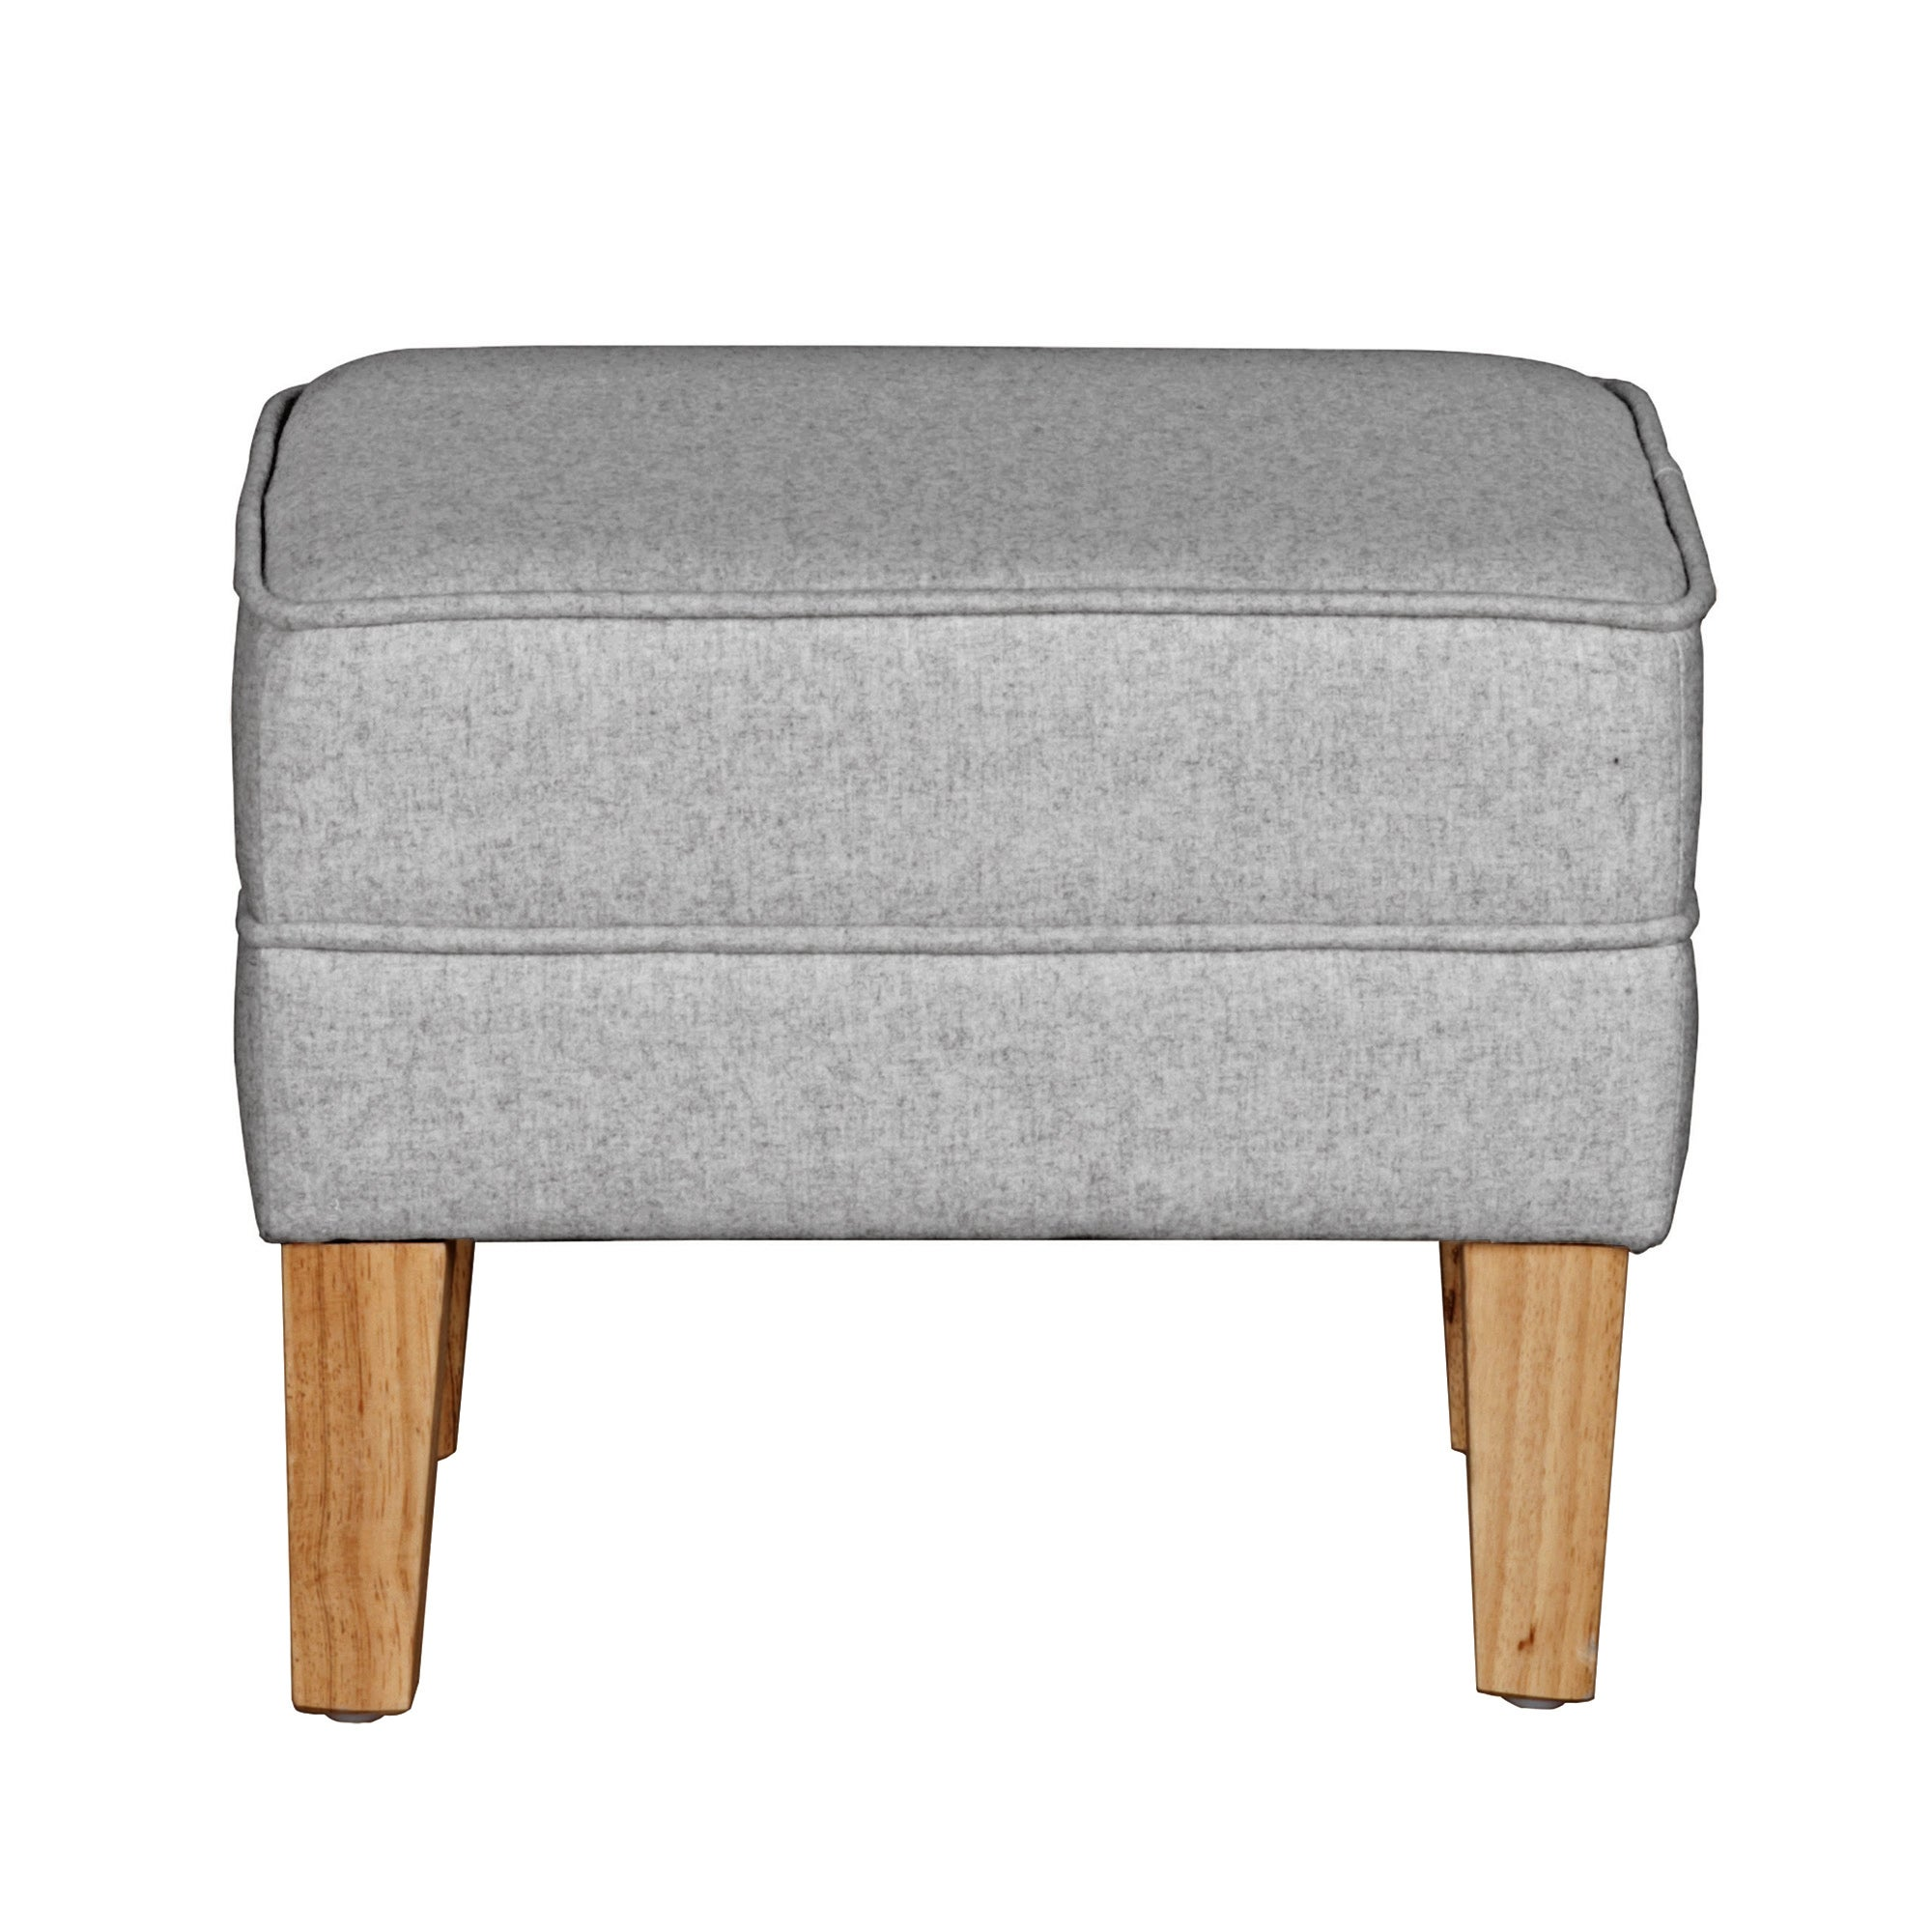 Valencia Grey Textured Weave Footstool